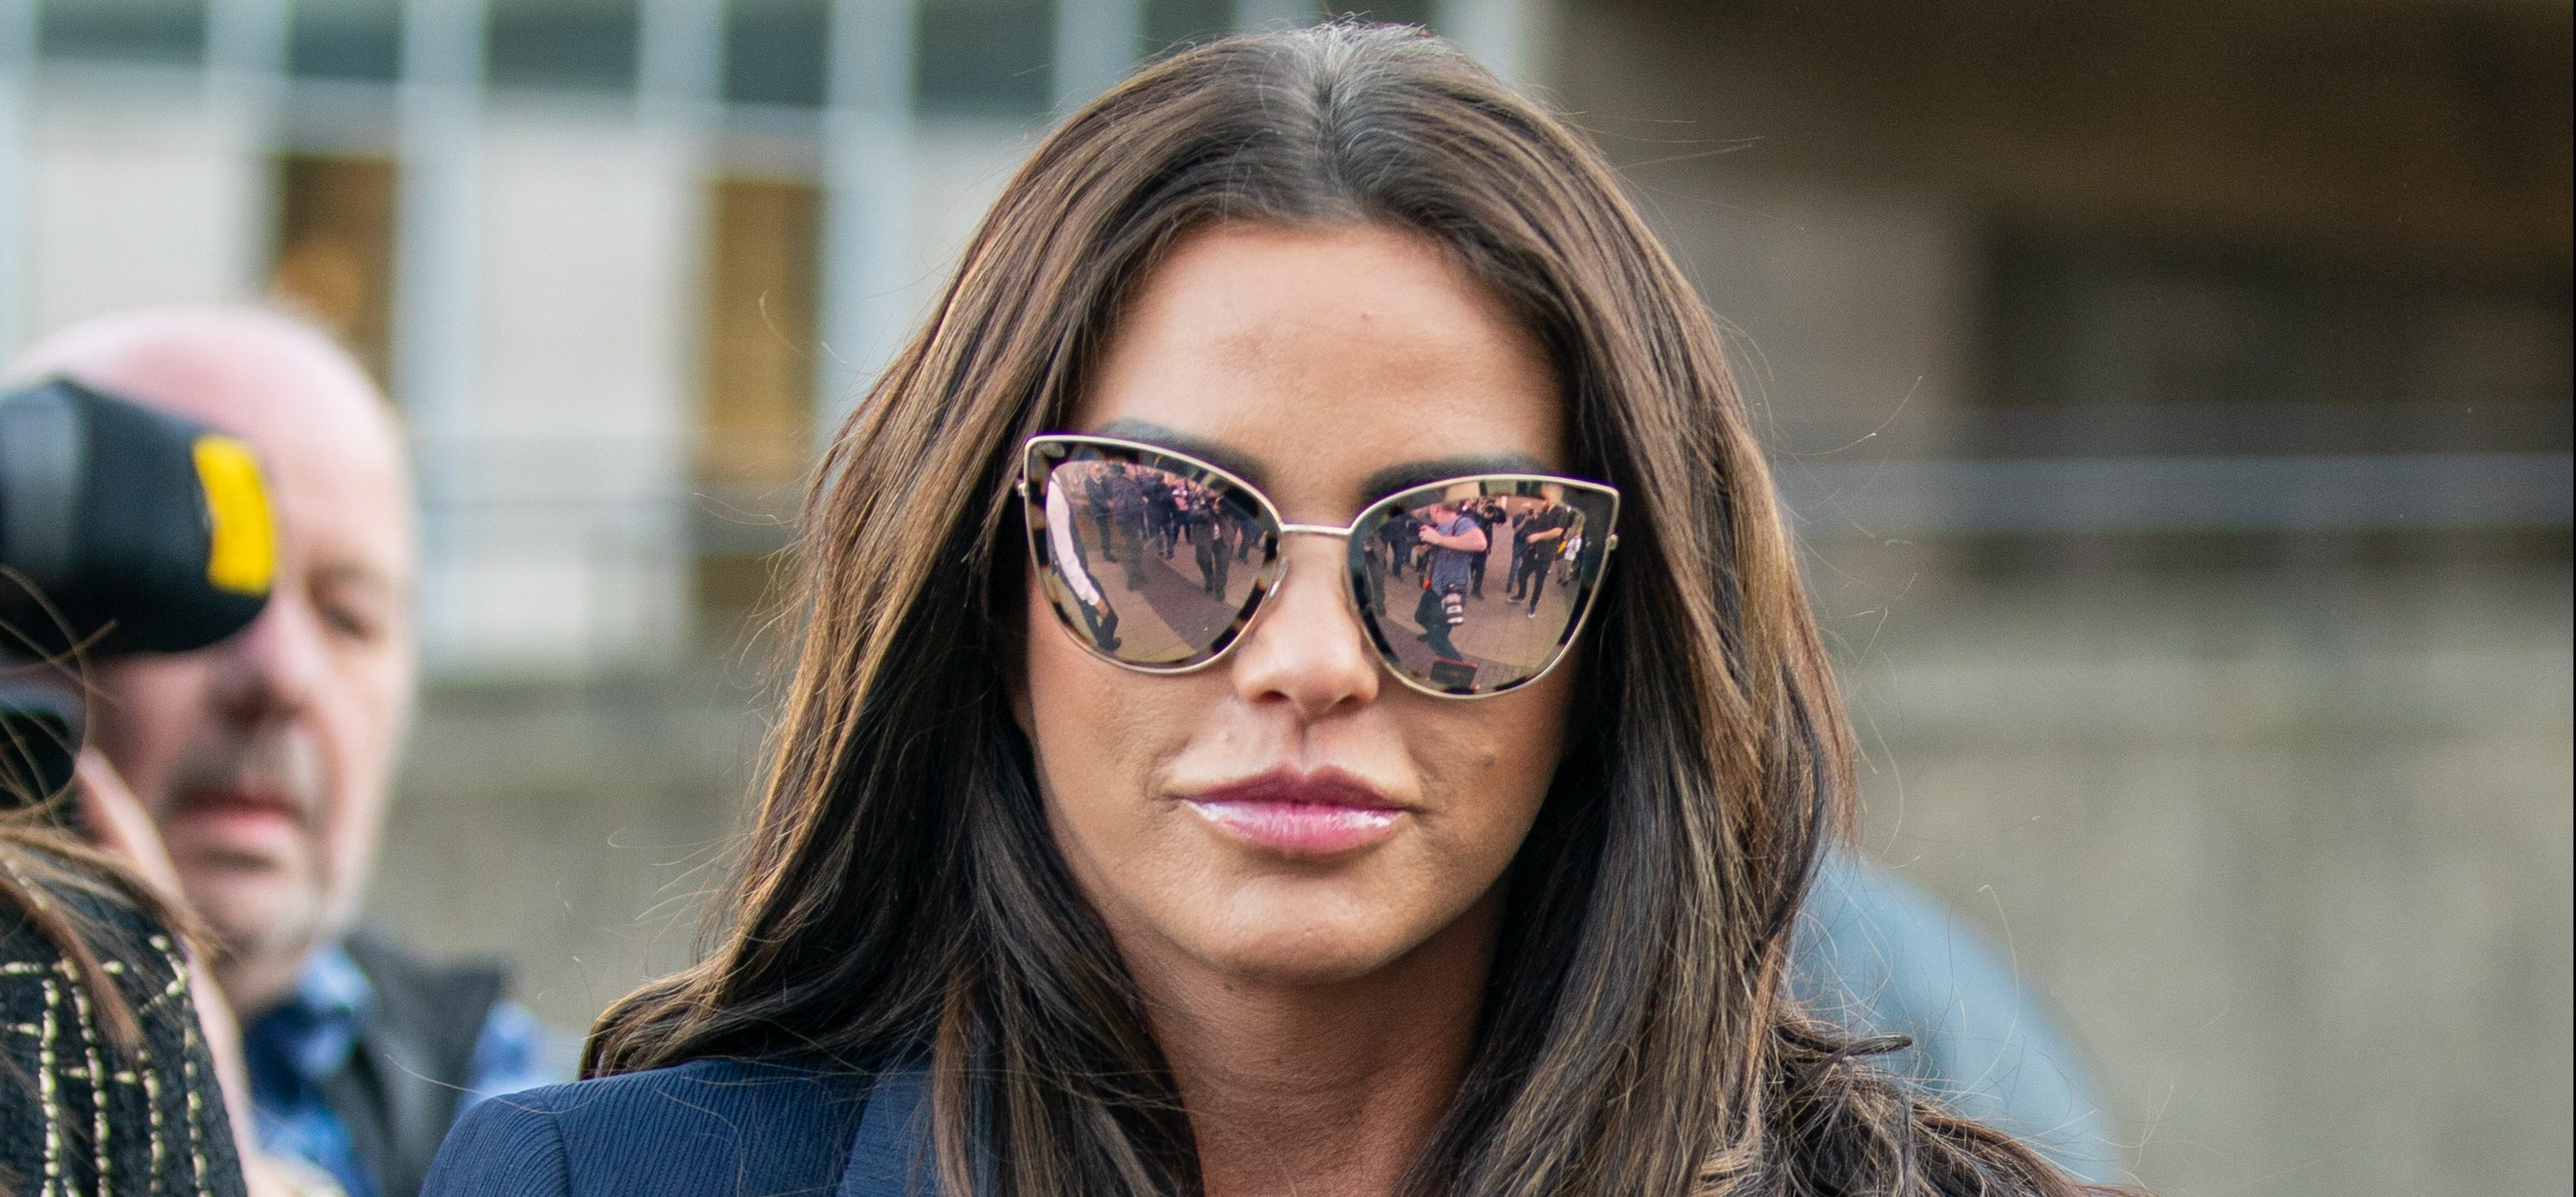 Katie Price's former toyboy Charles Drury says model is a 'one out of ten' in bed